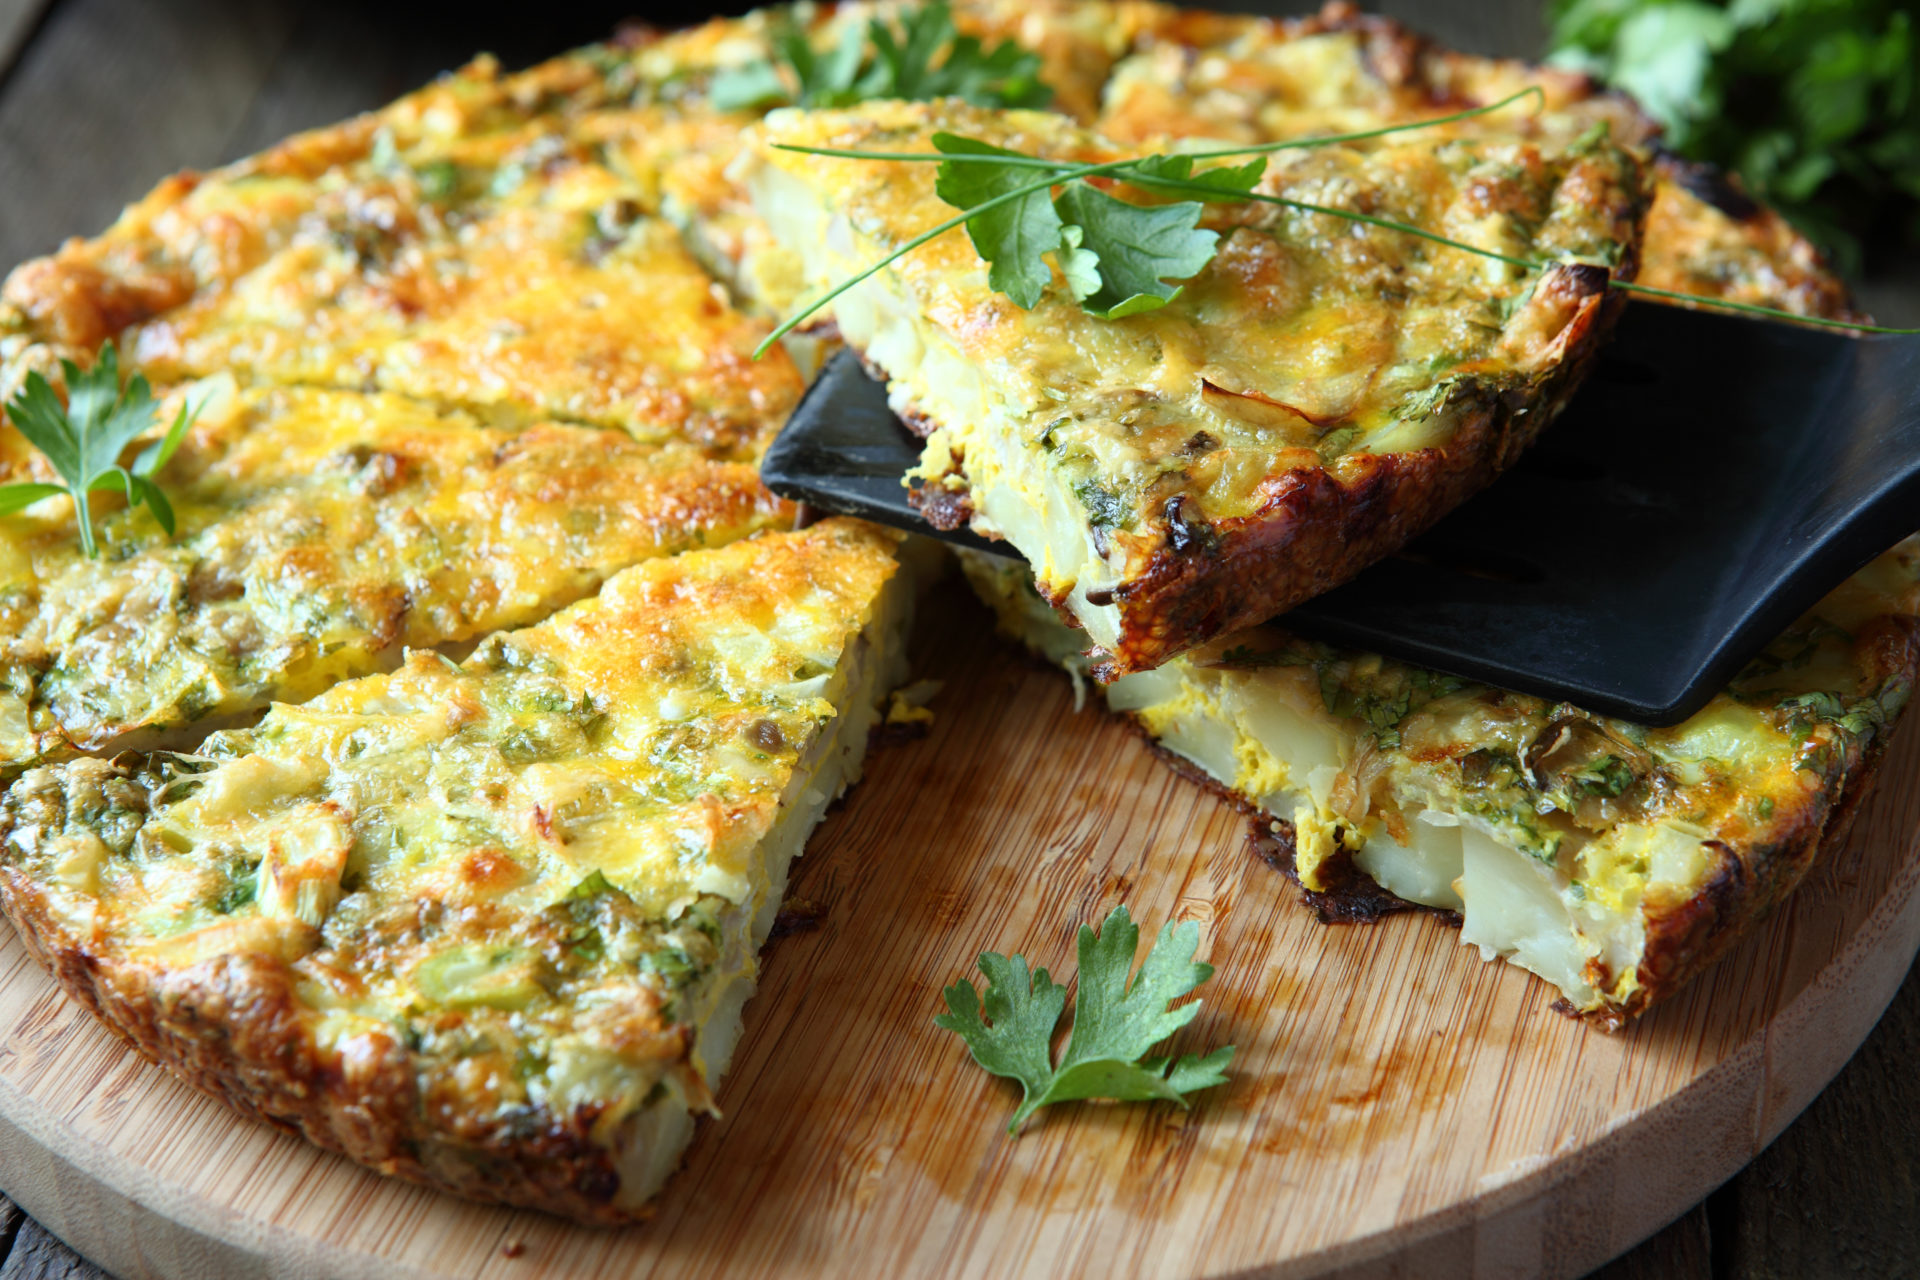 Frittata with slices of fresh greens